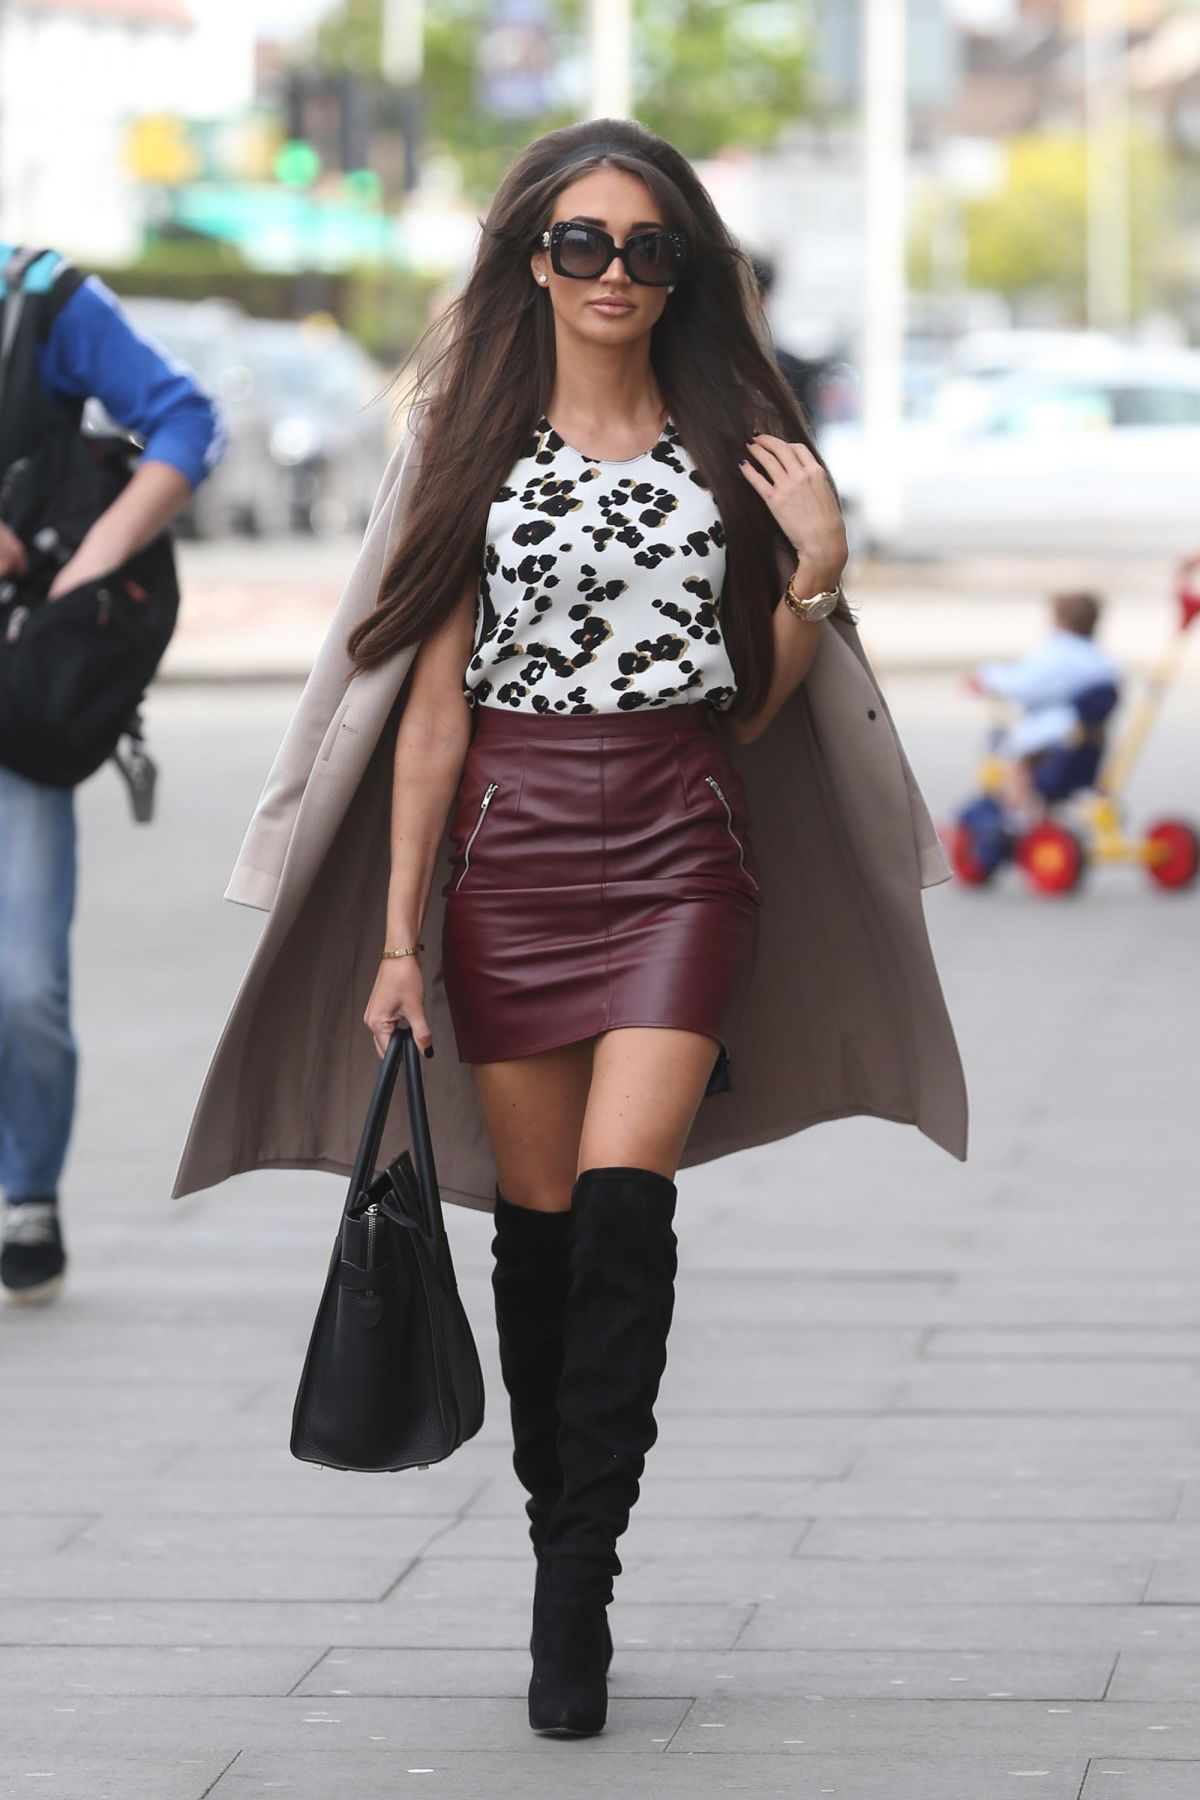 Megan McKenna Filming scenes for TOWIE at Faces Nightclub in Ilford, UK   megan-mckenna-filming-scenes-for-towie-at-faces-nightclub-in-ilford-uk_2